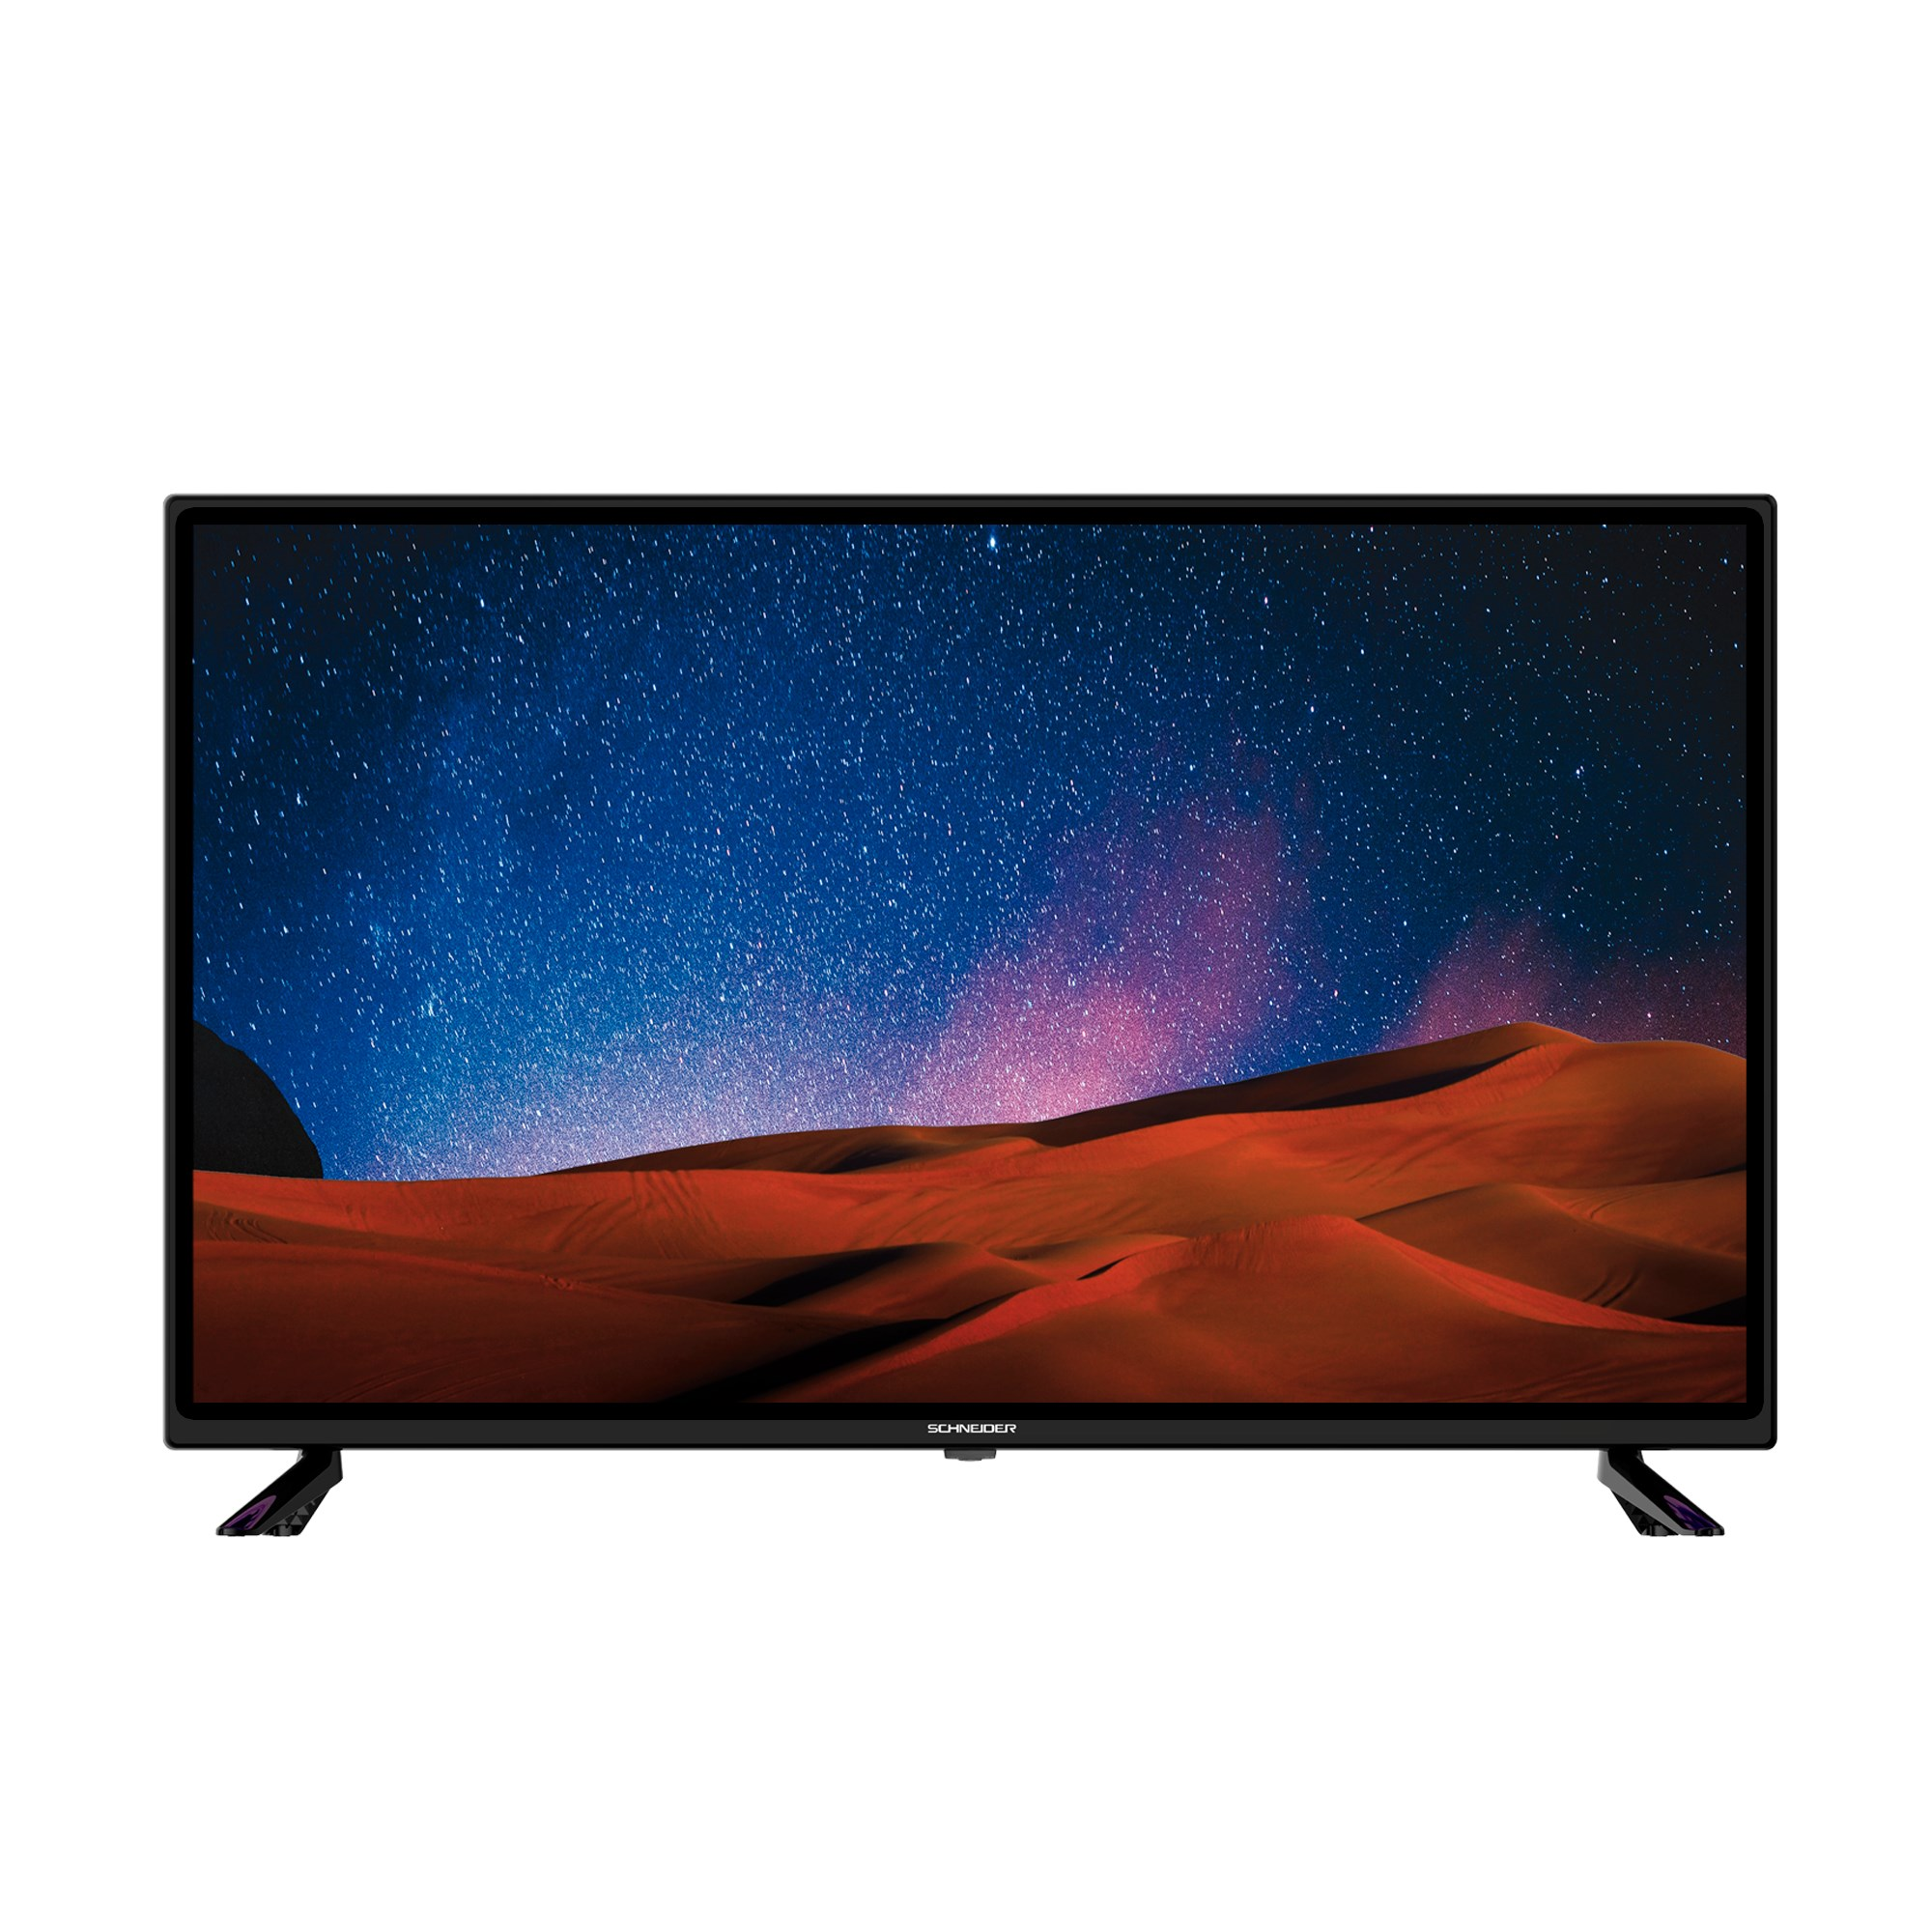 "DLED TV SMART TV ANDROID 32 ""SC450K Black"